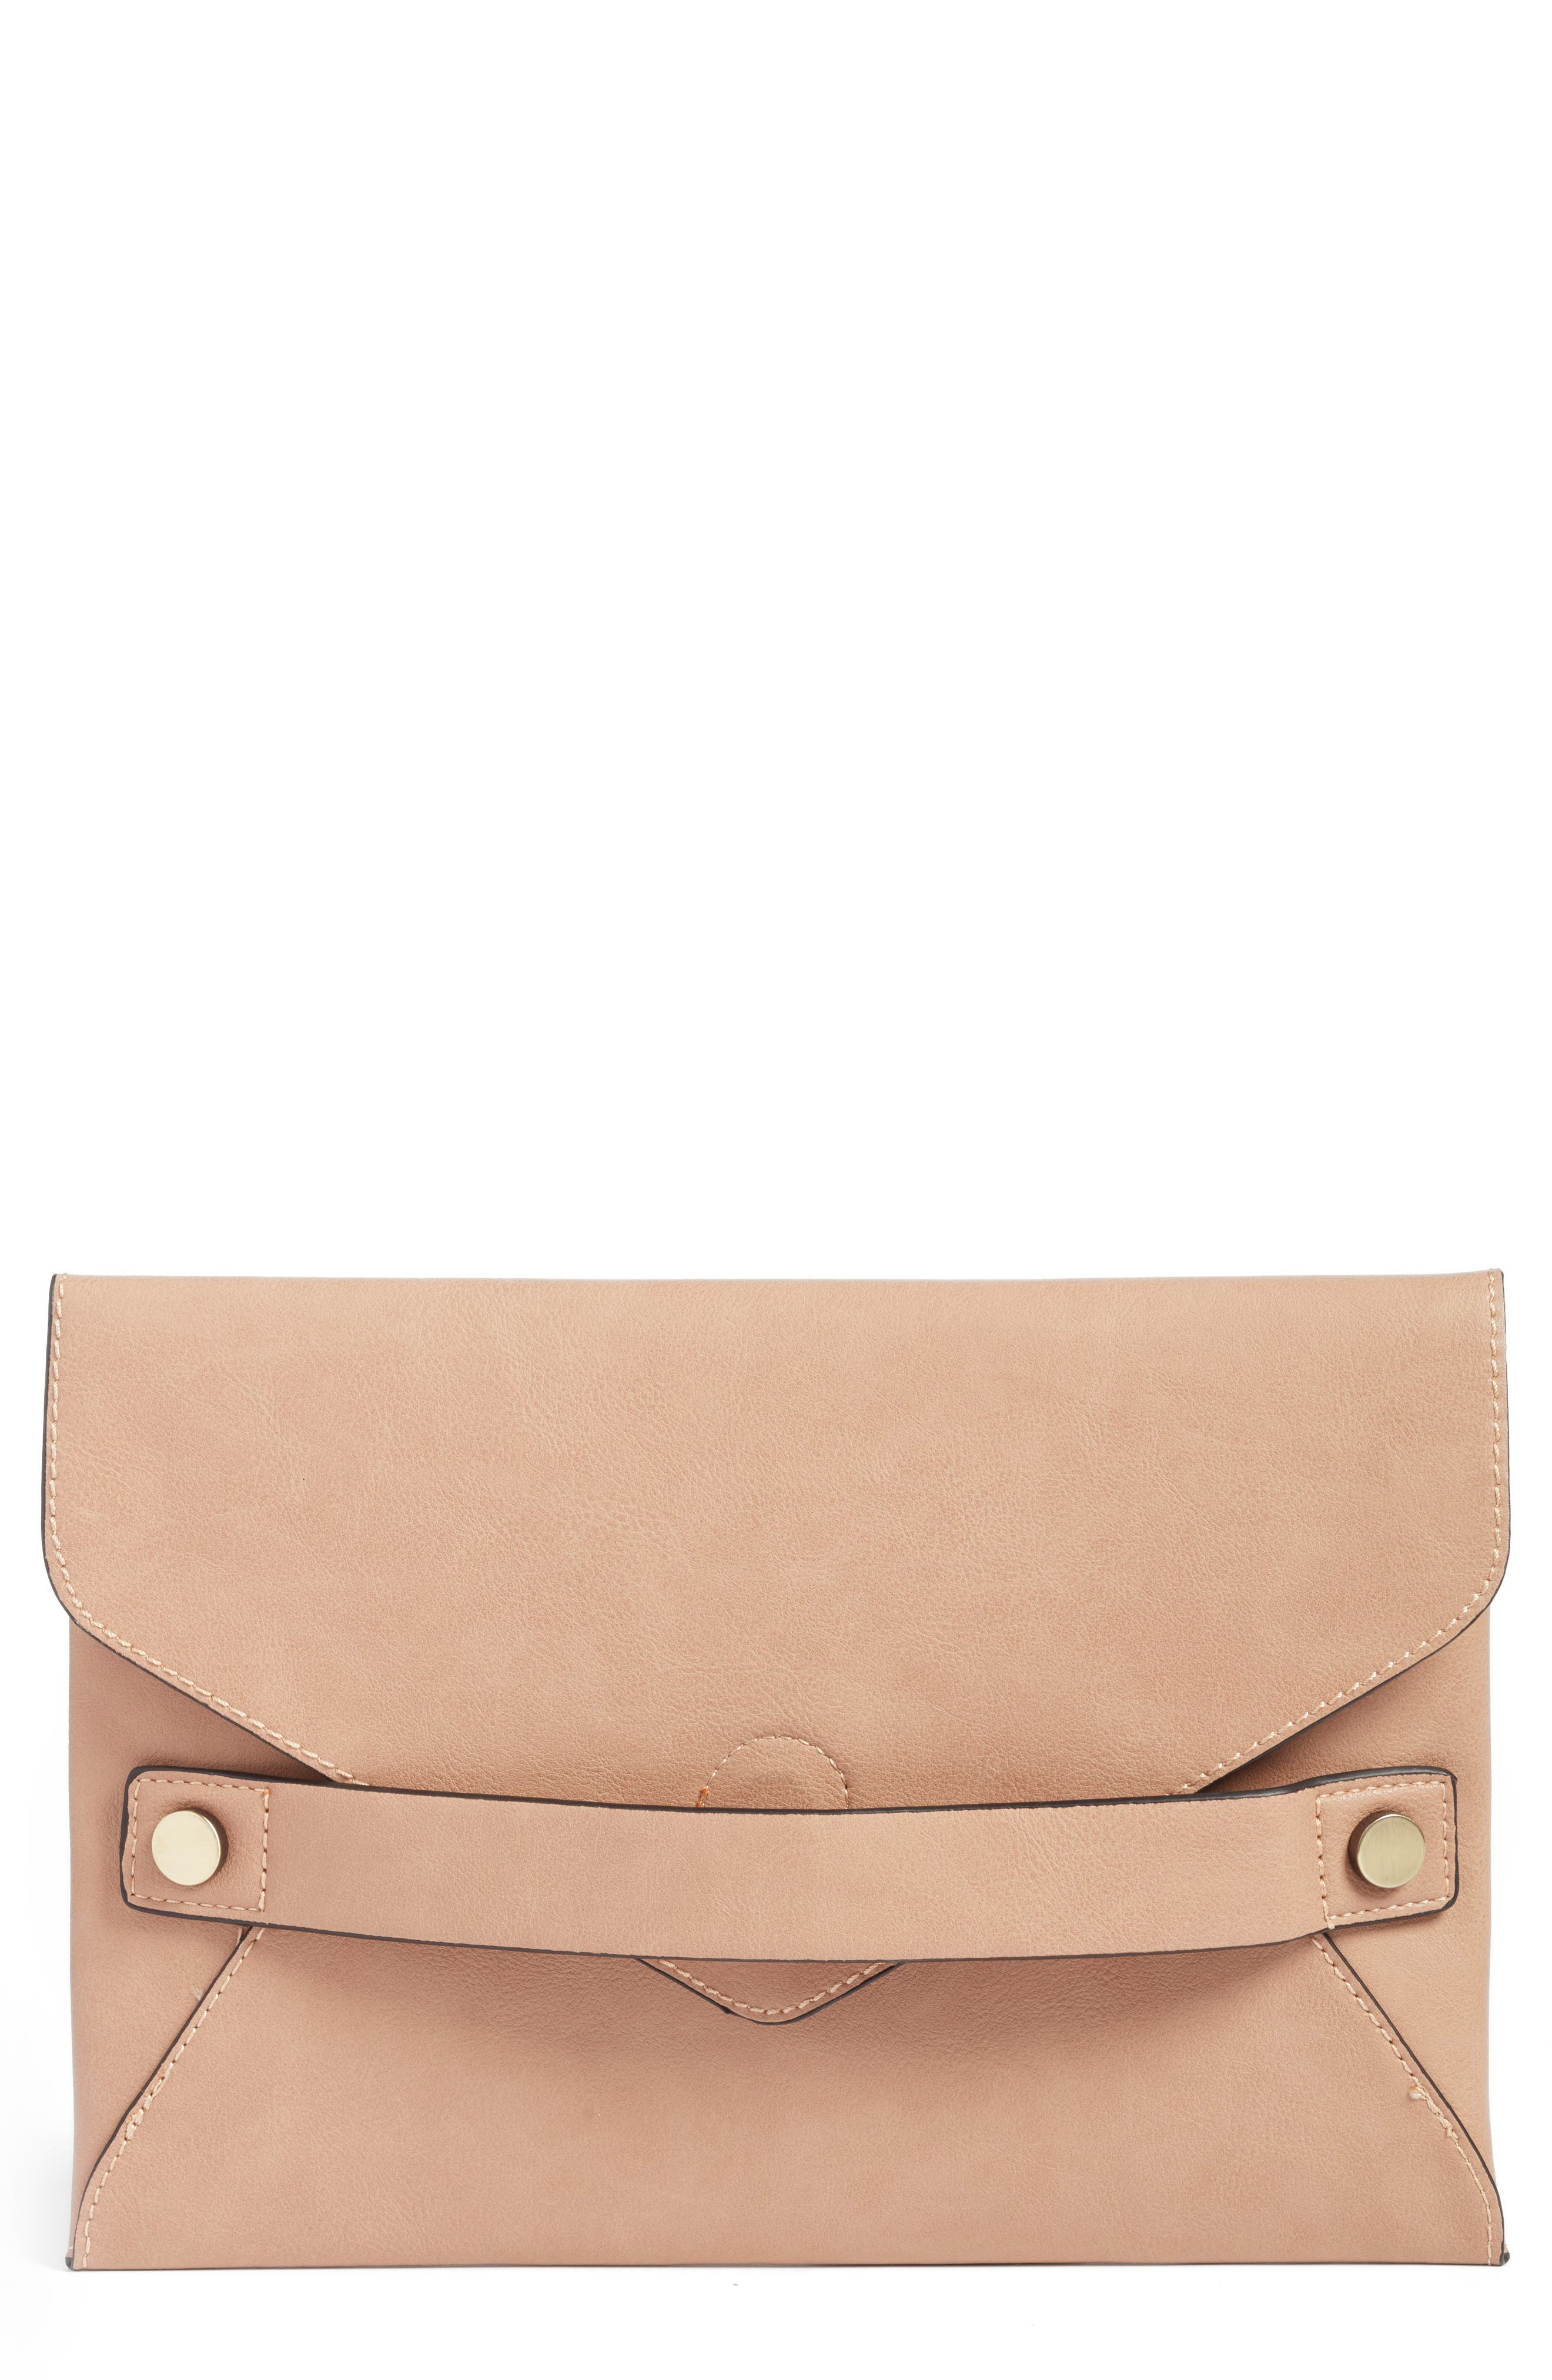 Alternate Image 1 Selected - Sole Society Karen Faux Leather Envelope Clutch